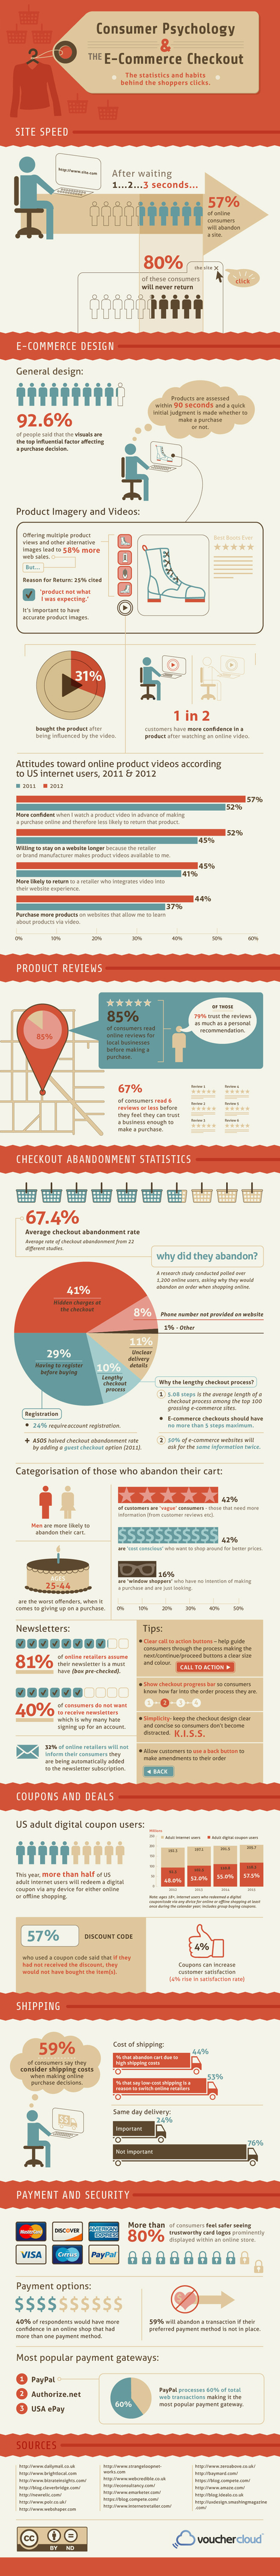 #infographic Consumer Psychology and E-Commerce Checkouts - BrainSINS Blog (blog)   Cloud Apps   Scoop.it